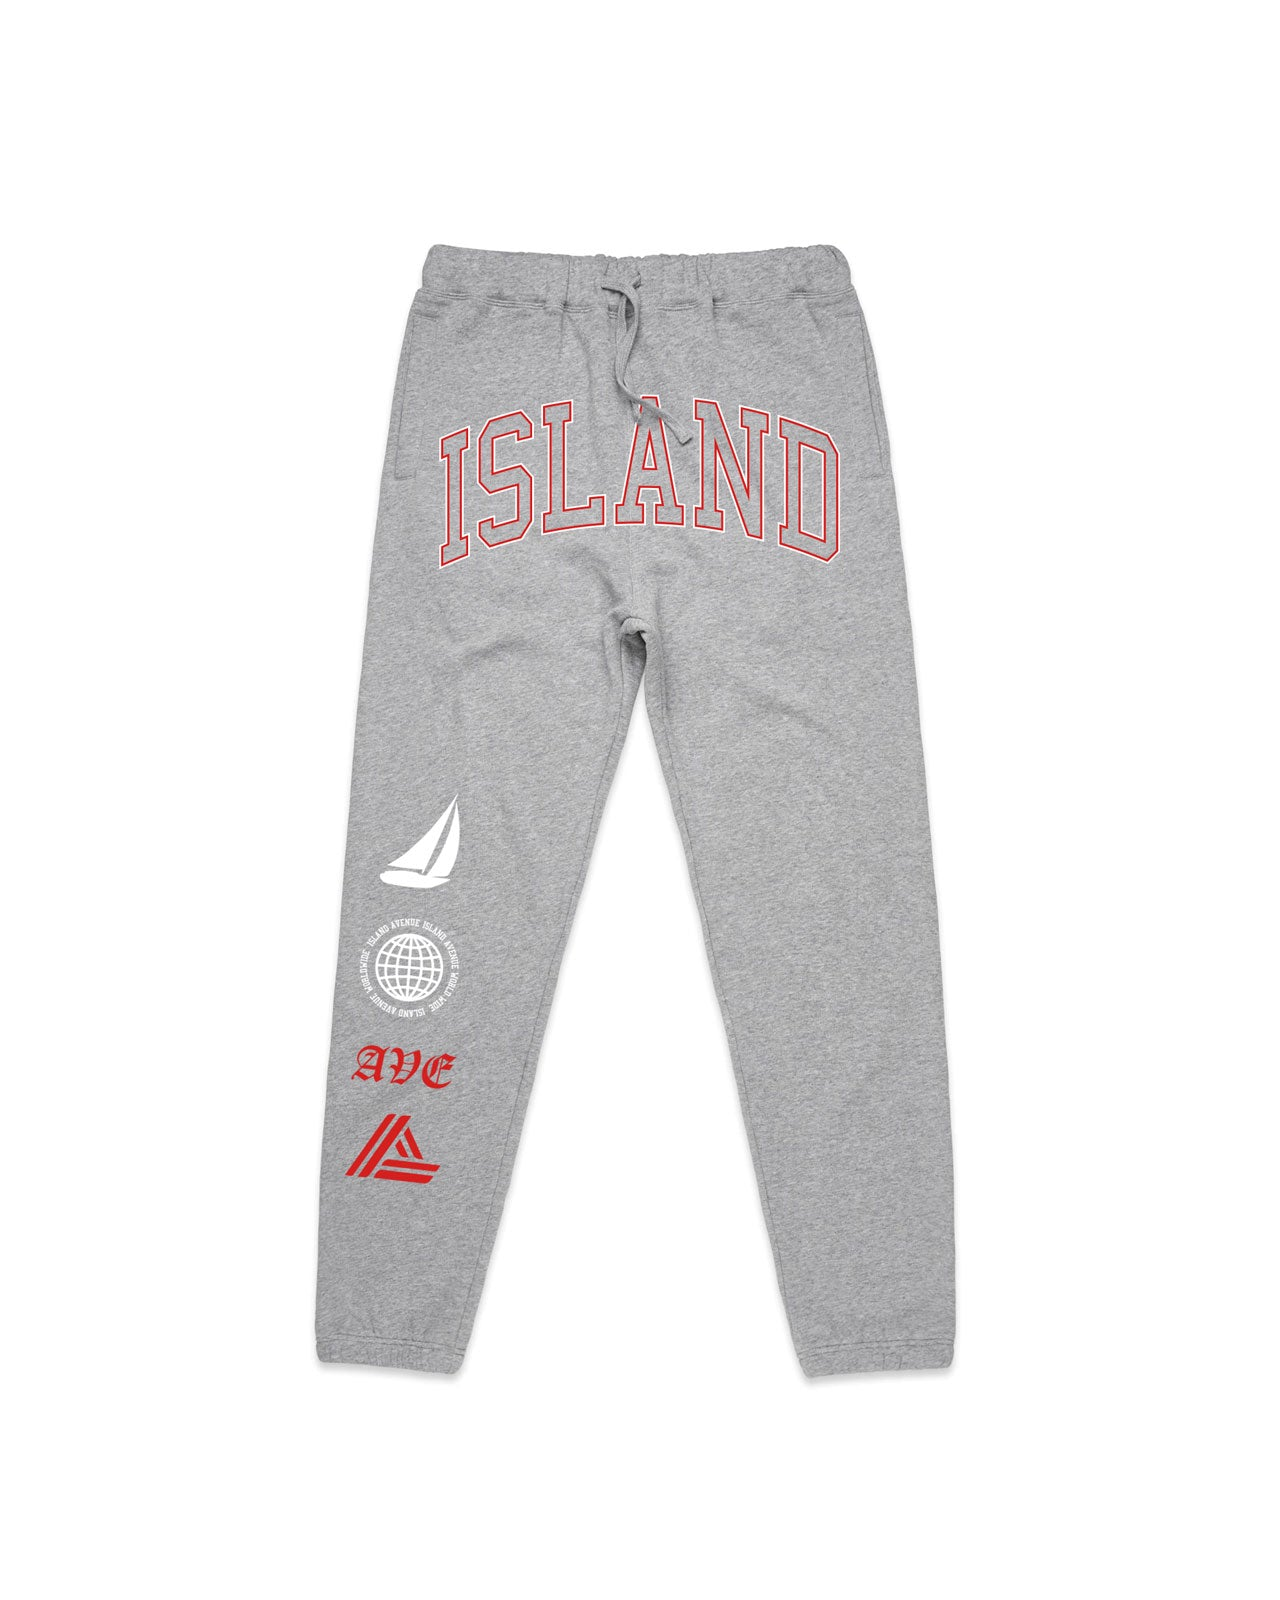 Global Joggers (Heather Grey/Red)